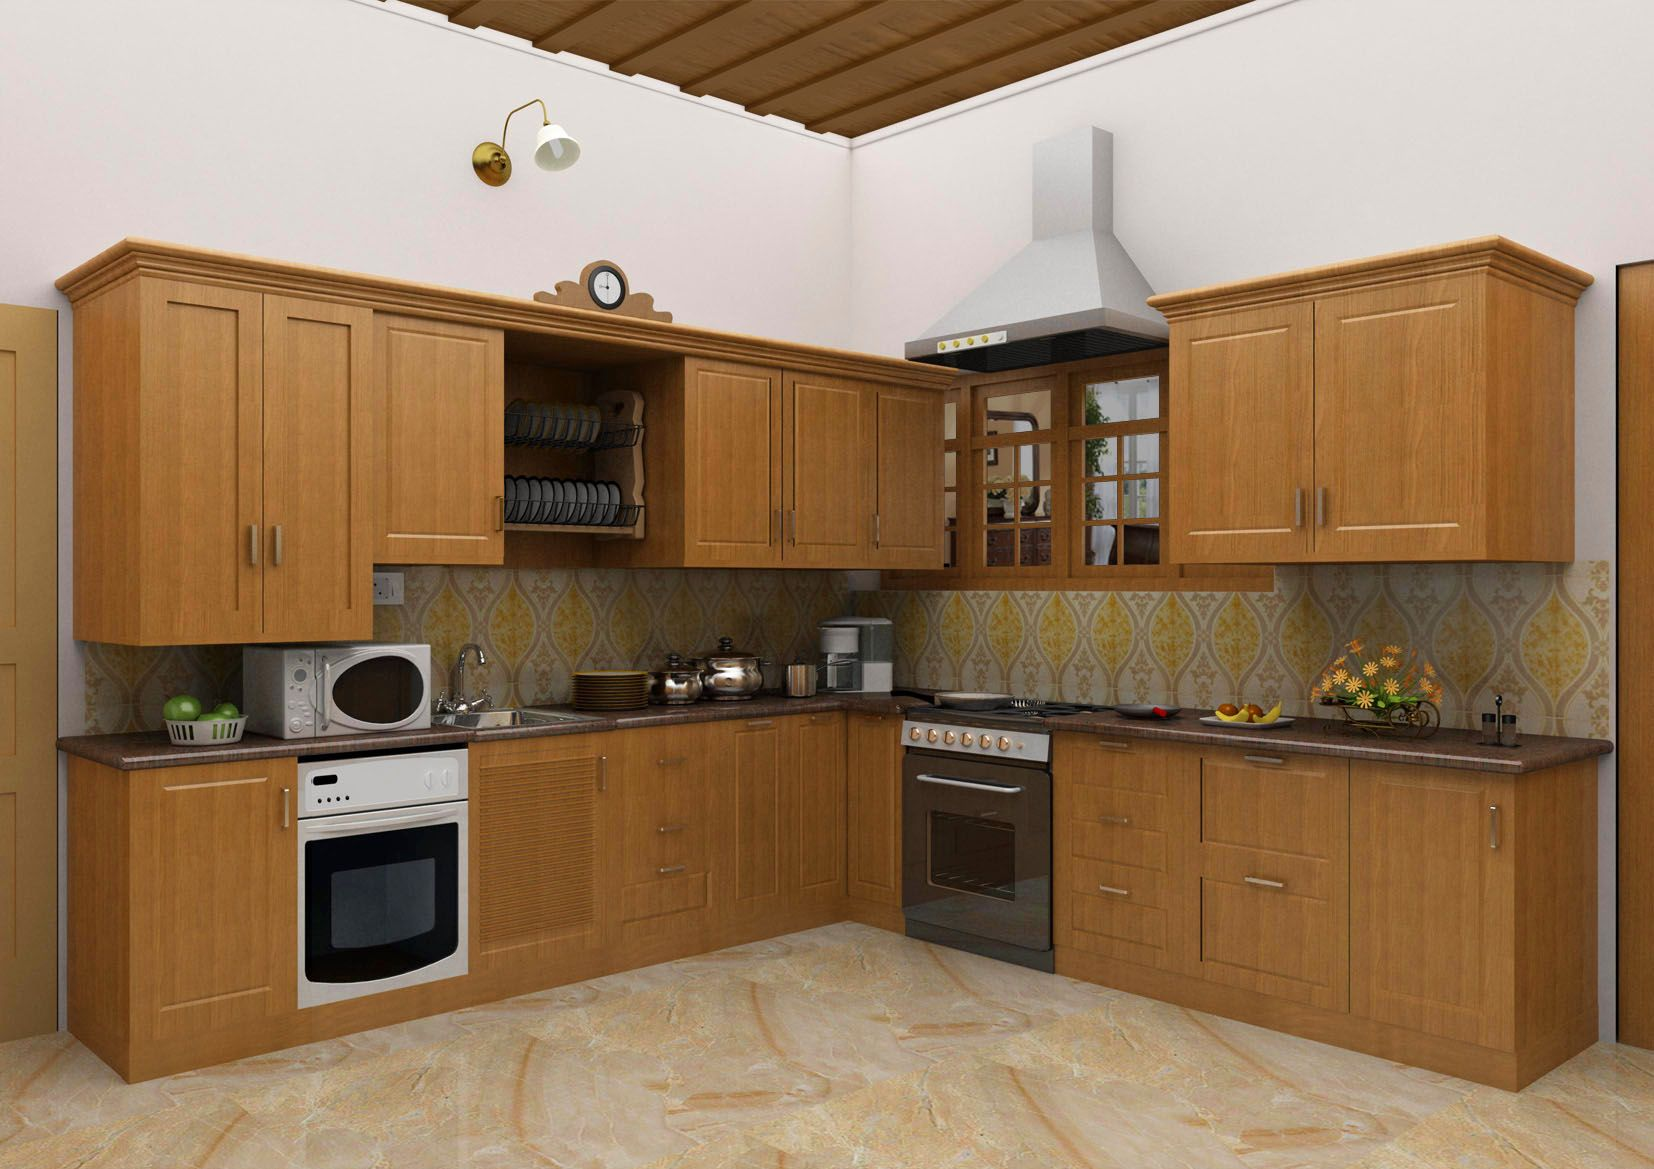 Spacio Designers Help You Understanding The Kitchen Design As Per